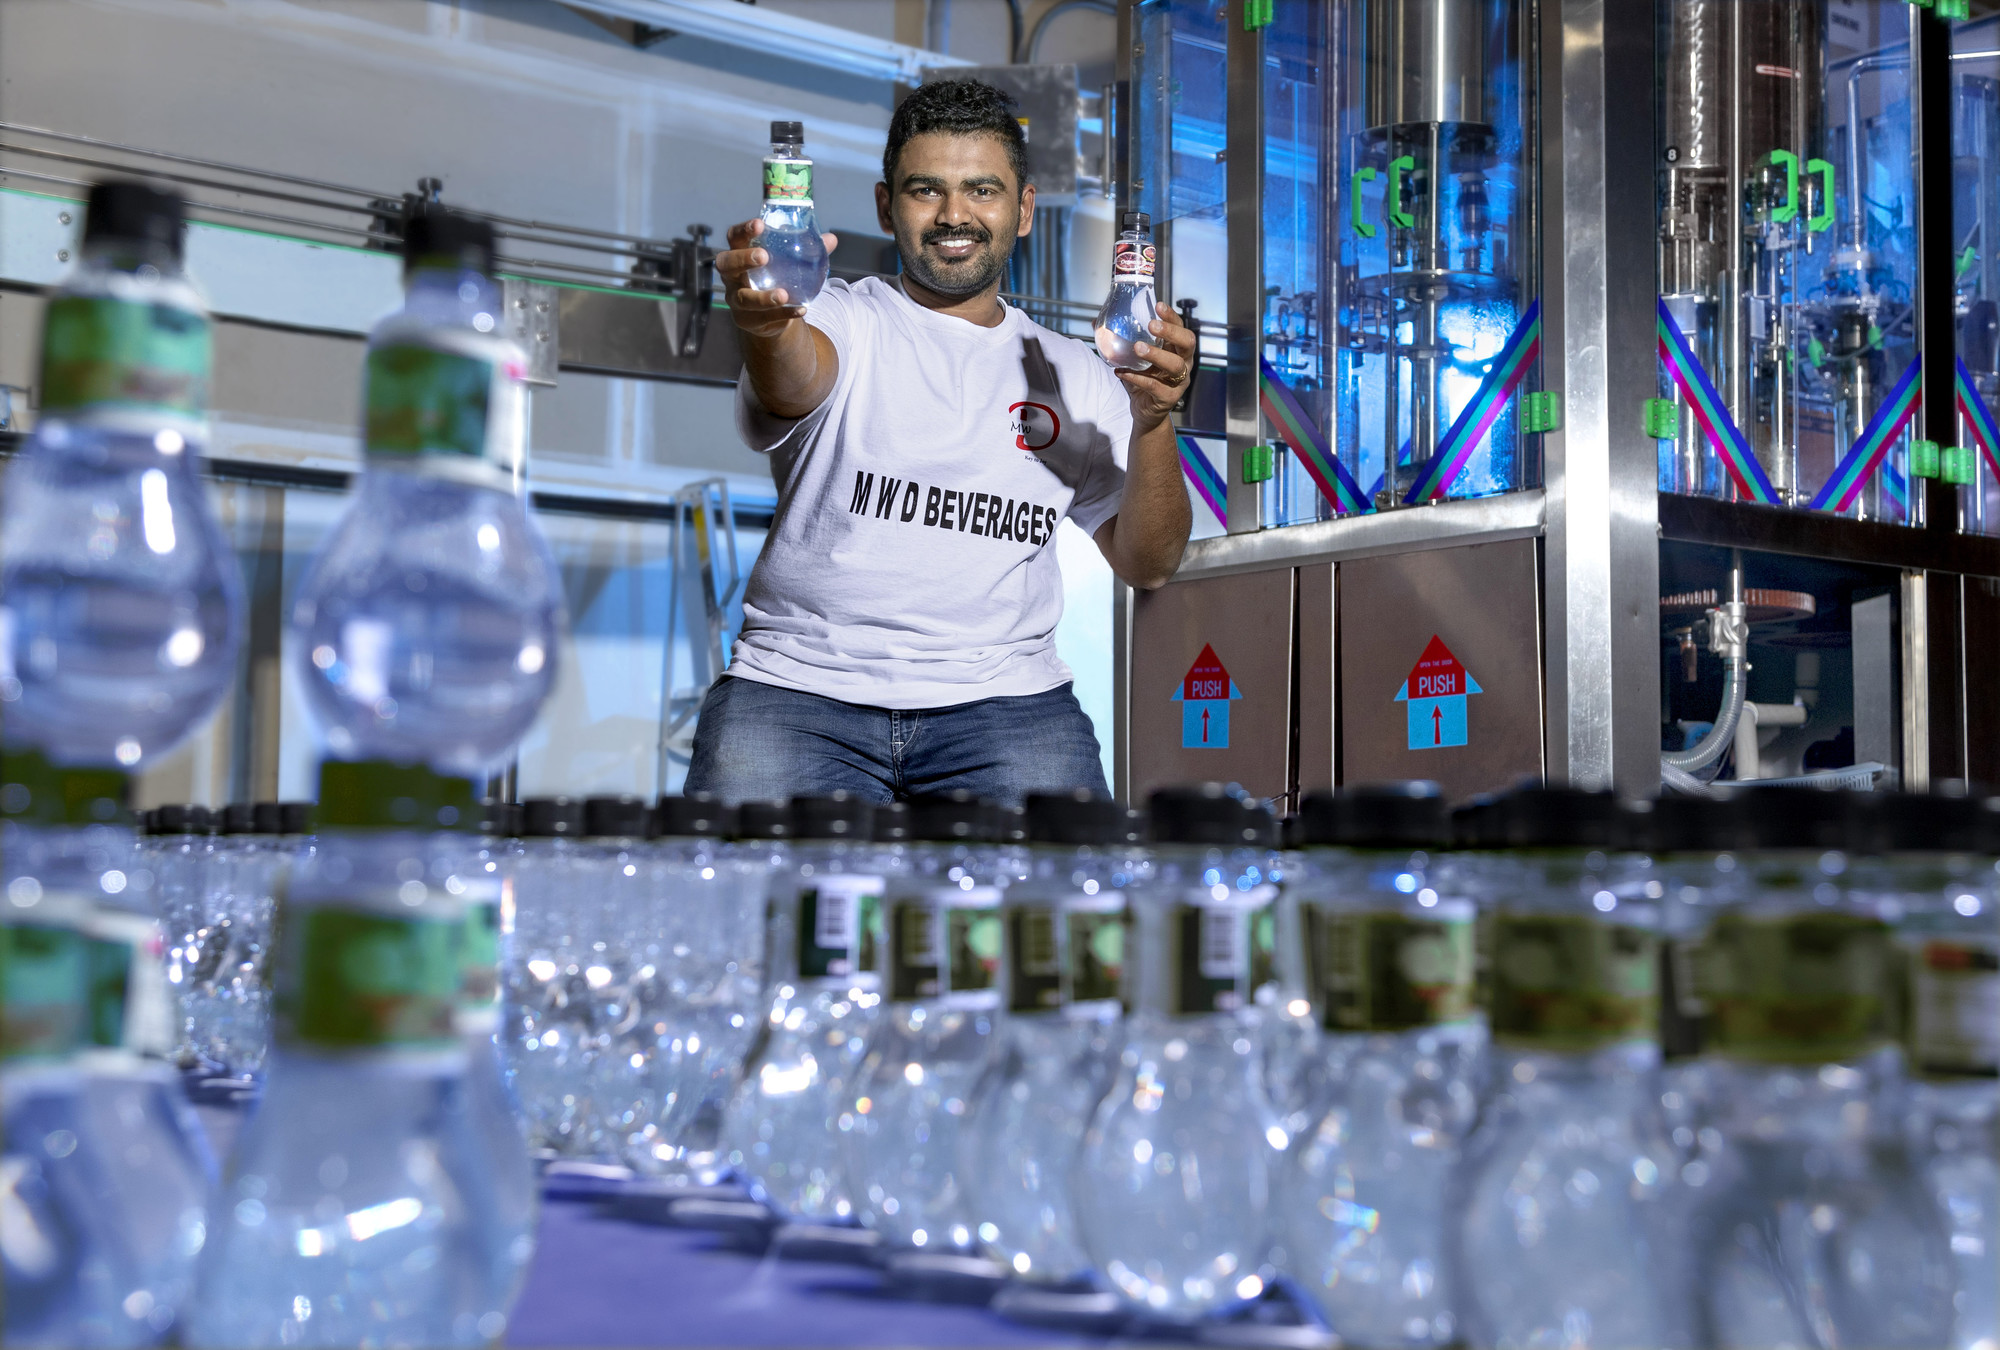 UA Little Rock business student Pavithran (Pavi) Tirukazhukundram Sekar Indira is manufacturing his own brand of flavored drinking water.